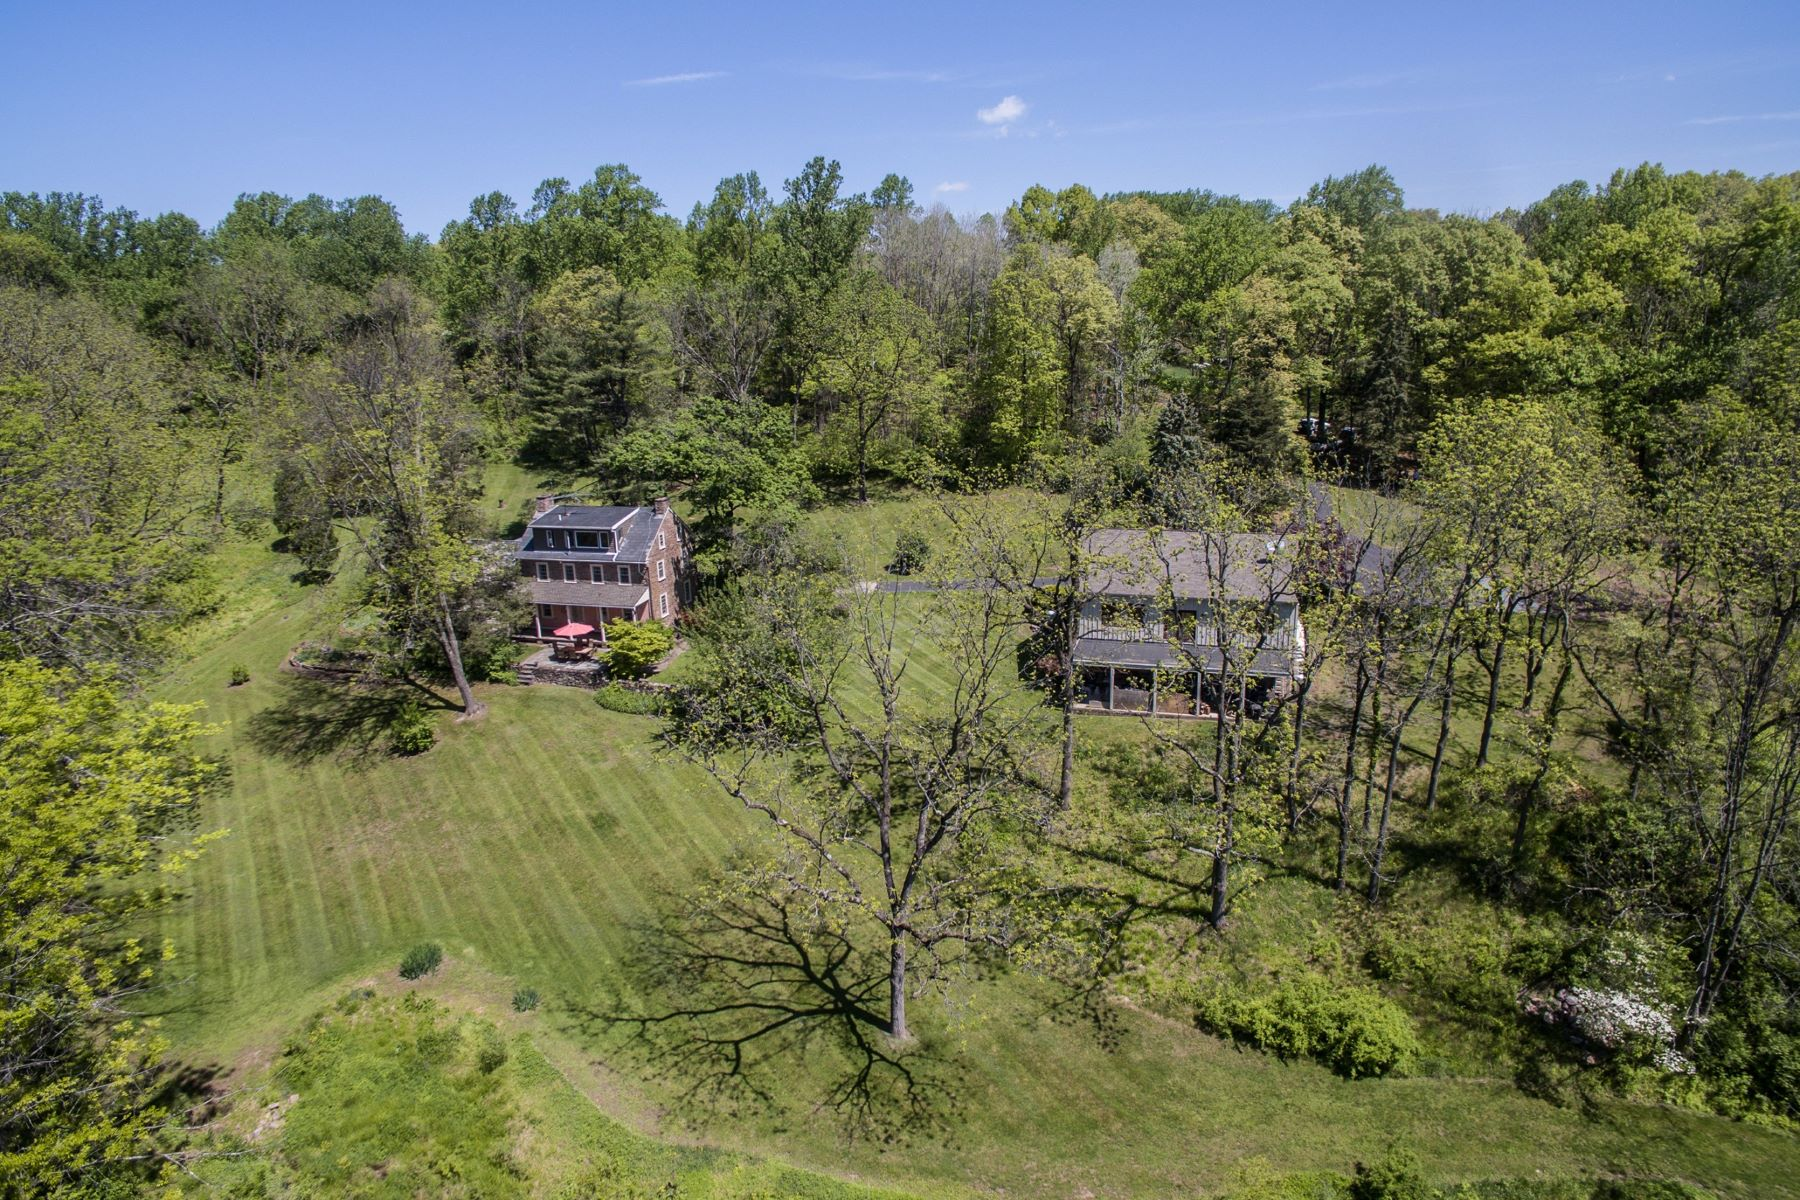 Single Family Home for Sale at Hidden Valley Farm 2415,2415+LT DEER TRL RD, Coopersburg, Pennsylvania 18036 United States